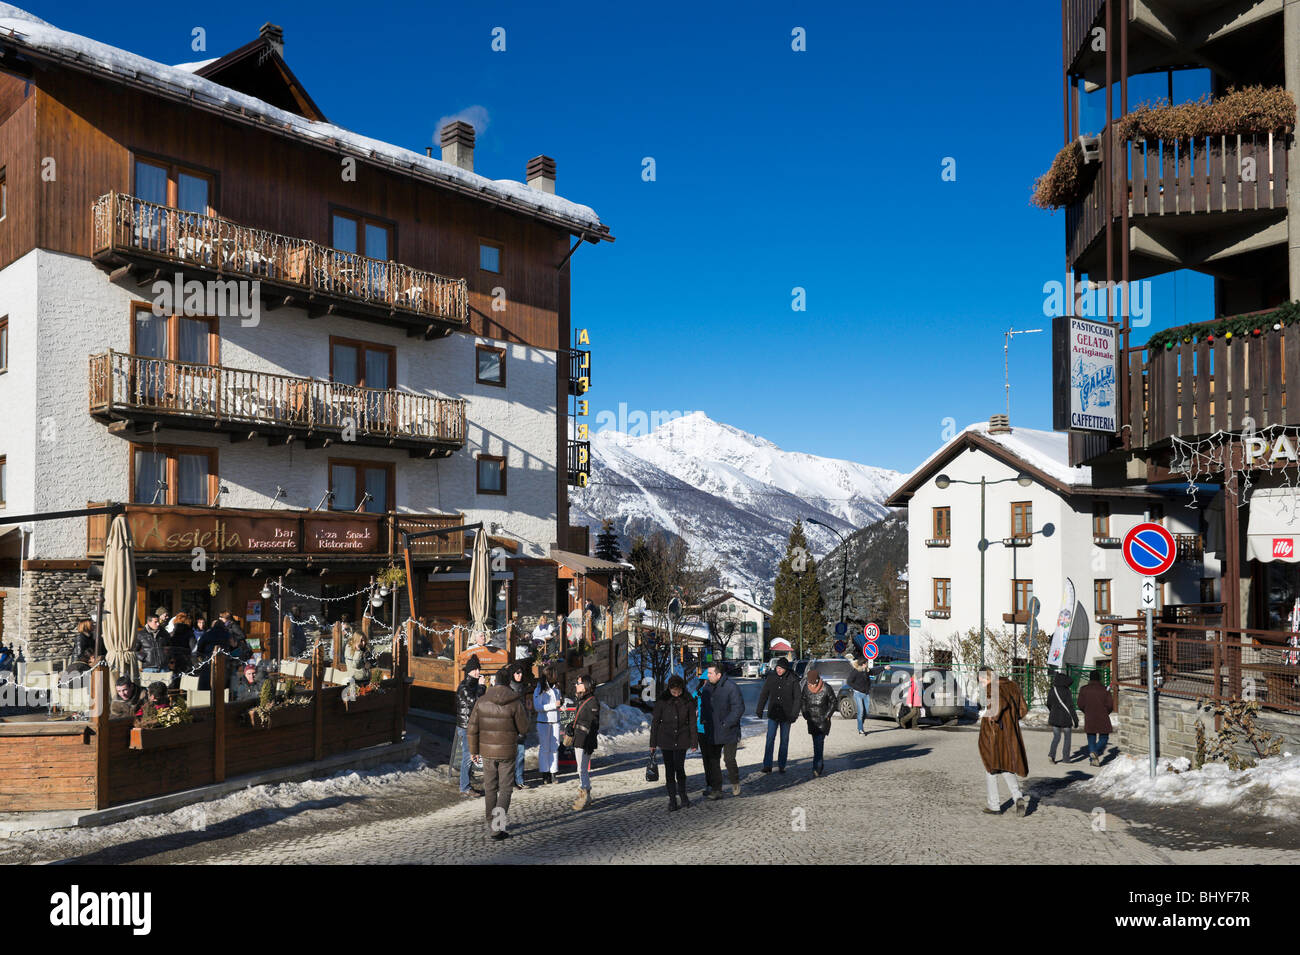 Bar in the centre of the old town, Sauze d'Oulx, Milky Way ski area, Italy - Stock Image